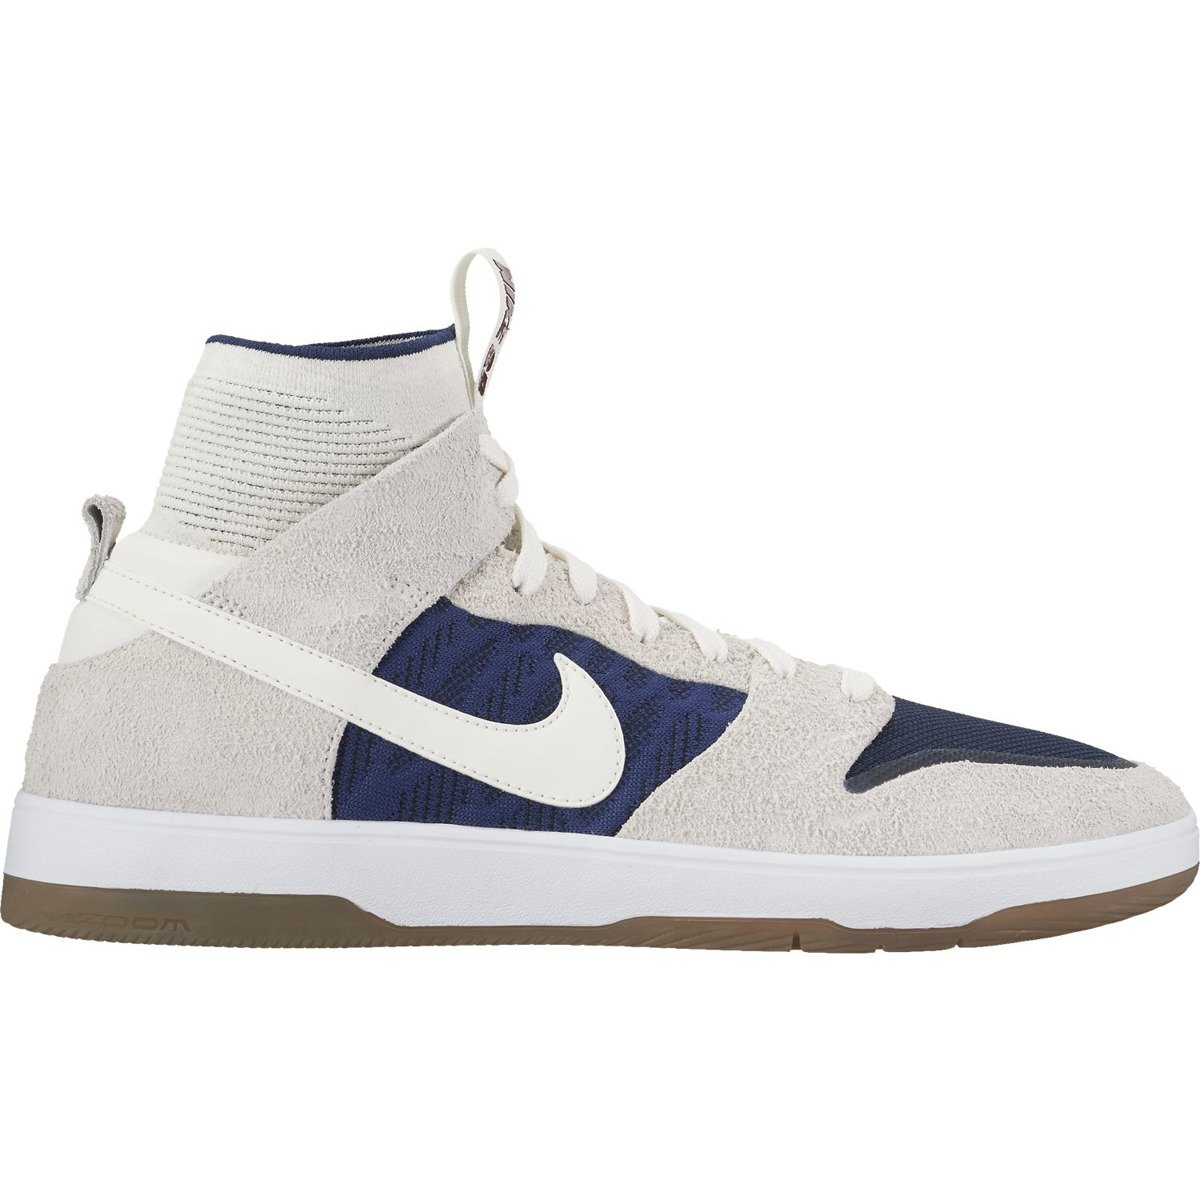 4ccb64c4e833 shoes nike sb zoom dunk high elite university red college navy-white Click  to zoom ...